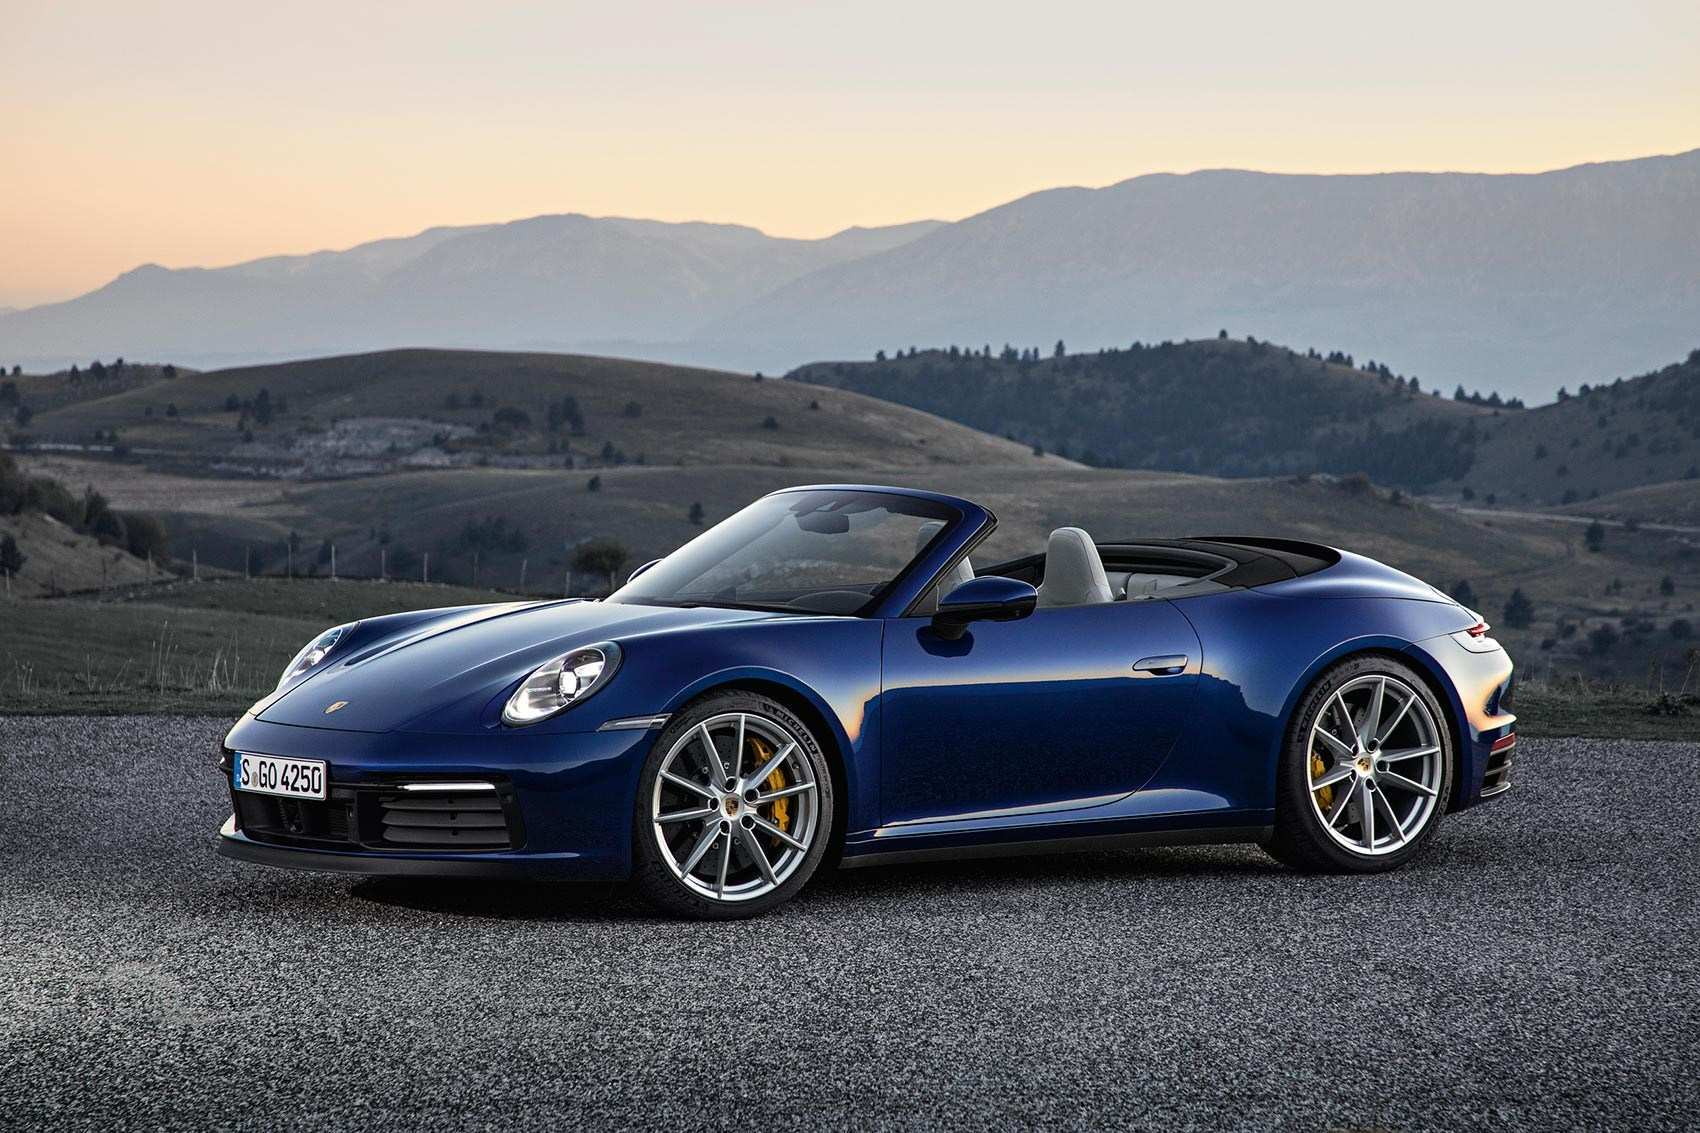 54 All New 2019 Porsche Release Overview for 2019 Porsche Release